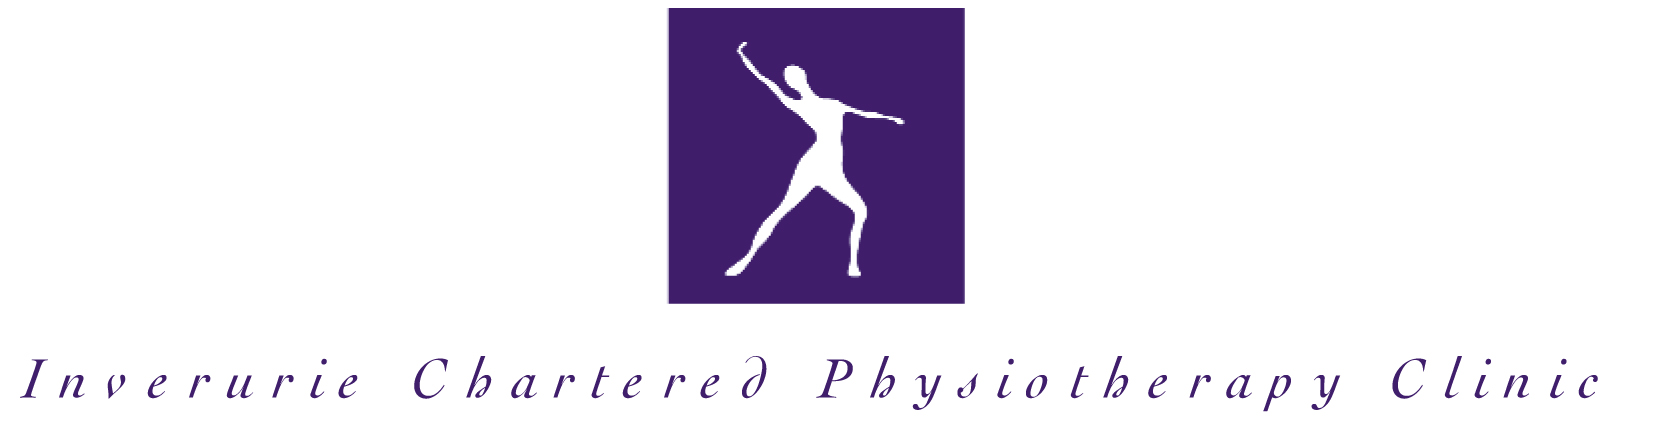 Inverurie Chartered Physiotherapy Clinic